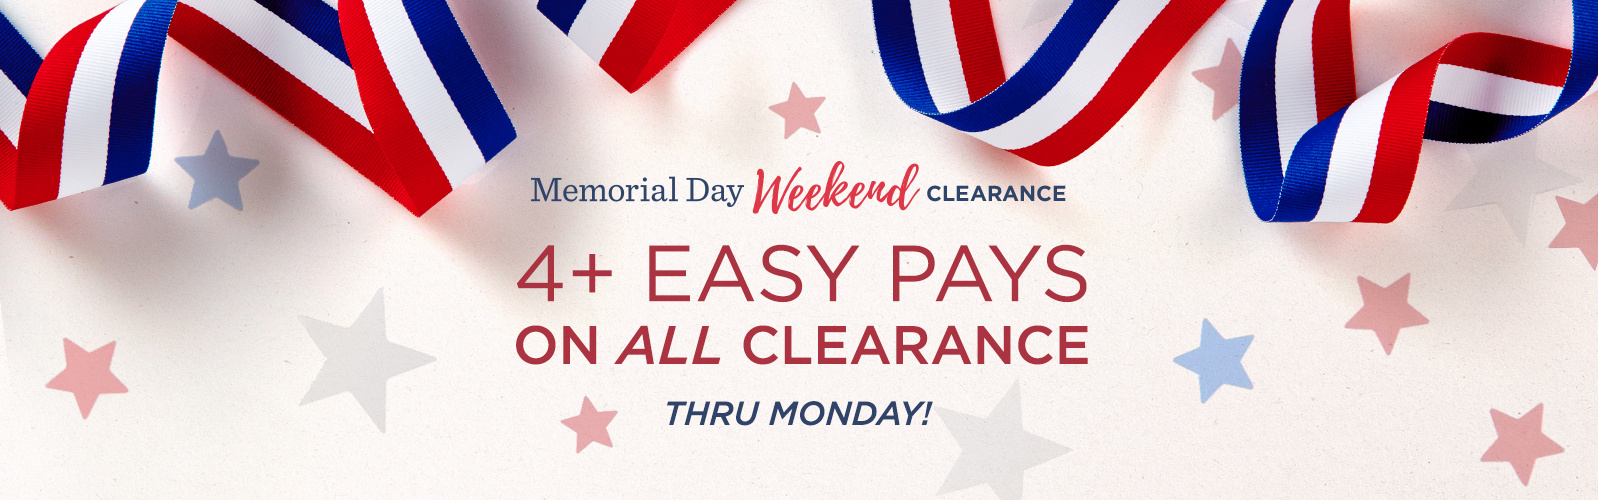 Memorial Day Weekend Clearance — 4+ Easy Pays on ALL Clearance Thru Monday!